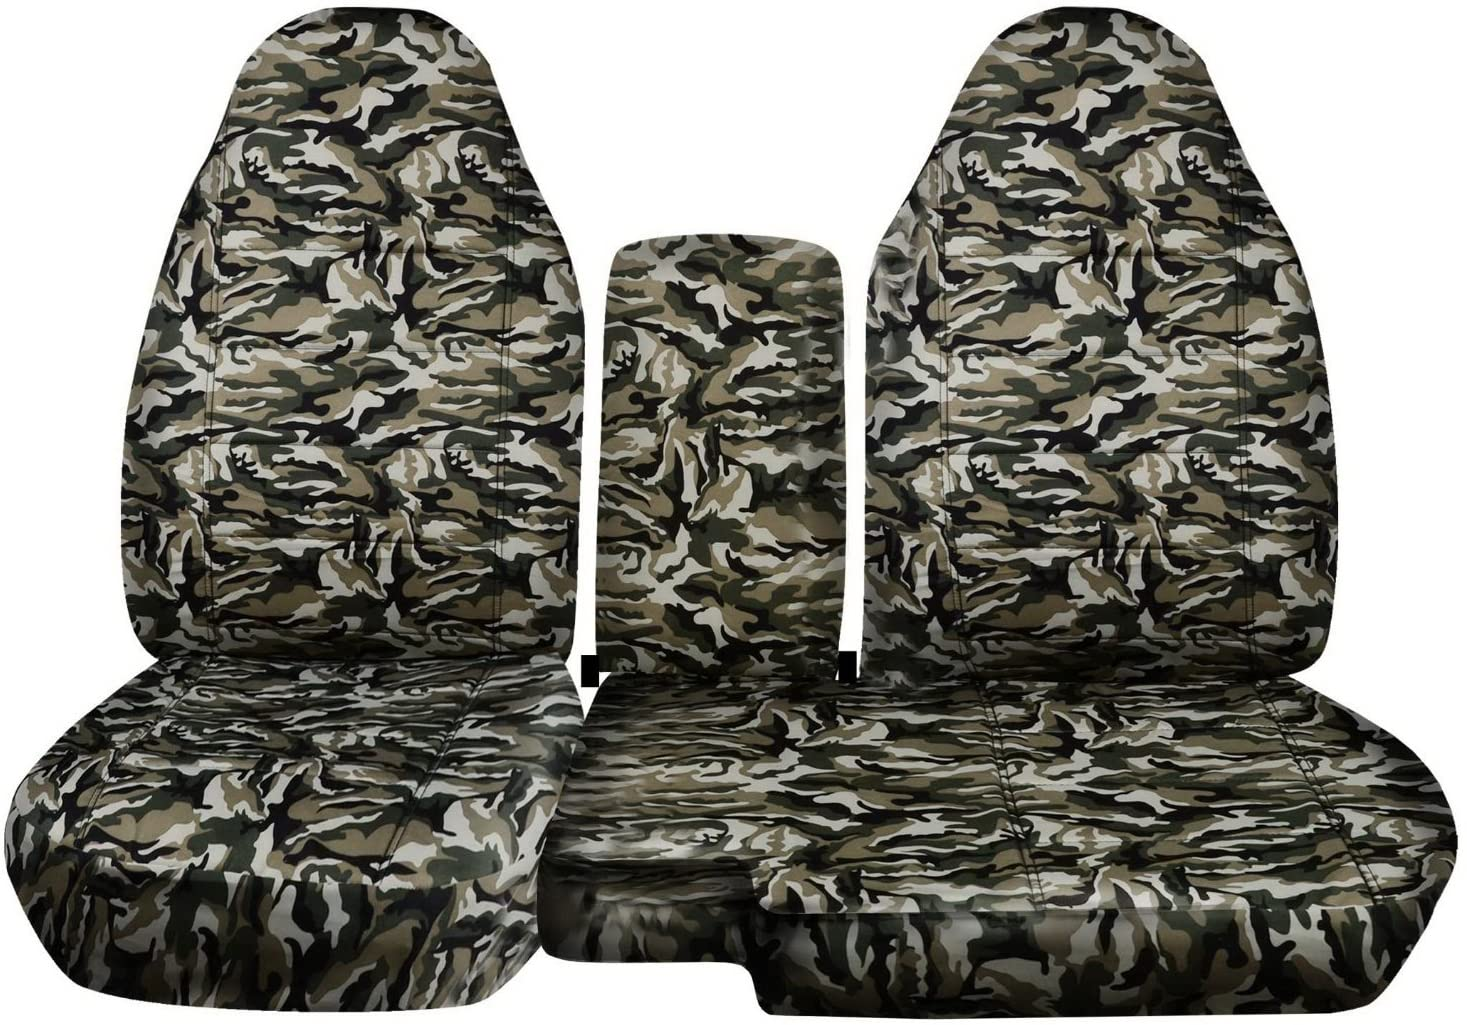 Totally Covers Compatible with 2004-2012 Chevy Colorado/GMC Canyon Camo Truck Seat Covers (Front 60/40 Bench) w Console/Armrest: Beige & Green Camouflage (16 Prints) Chevrolet